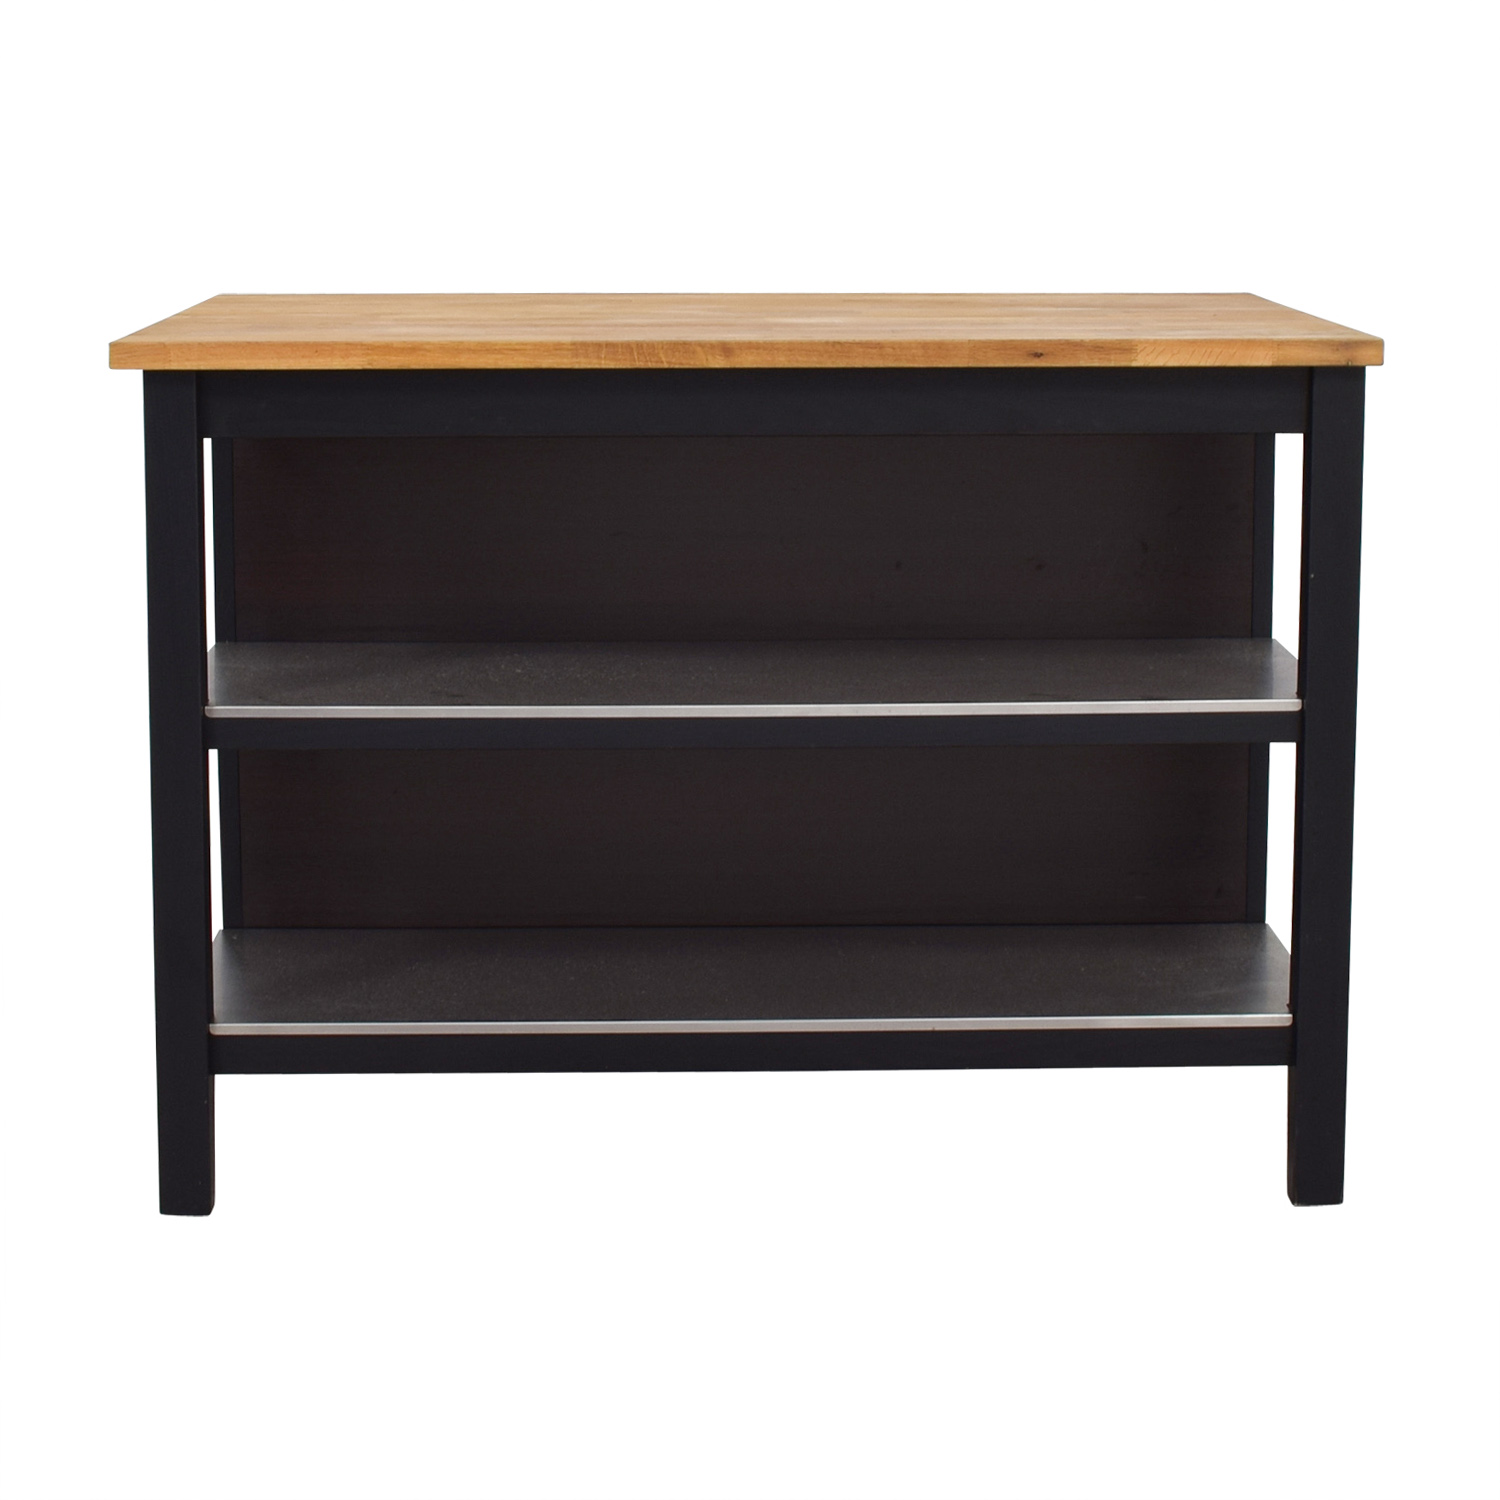 IKEA IKEA Stenstorp Wood Chrome And Black